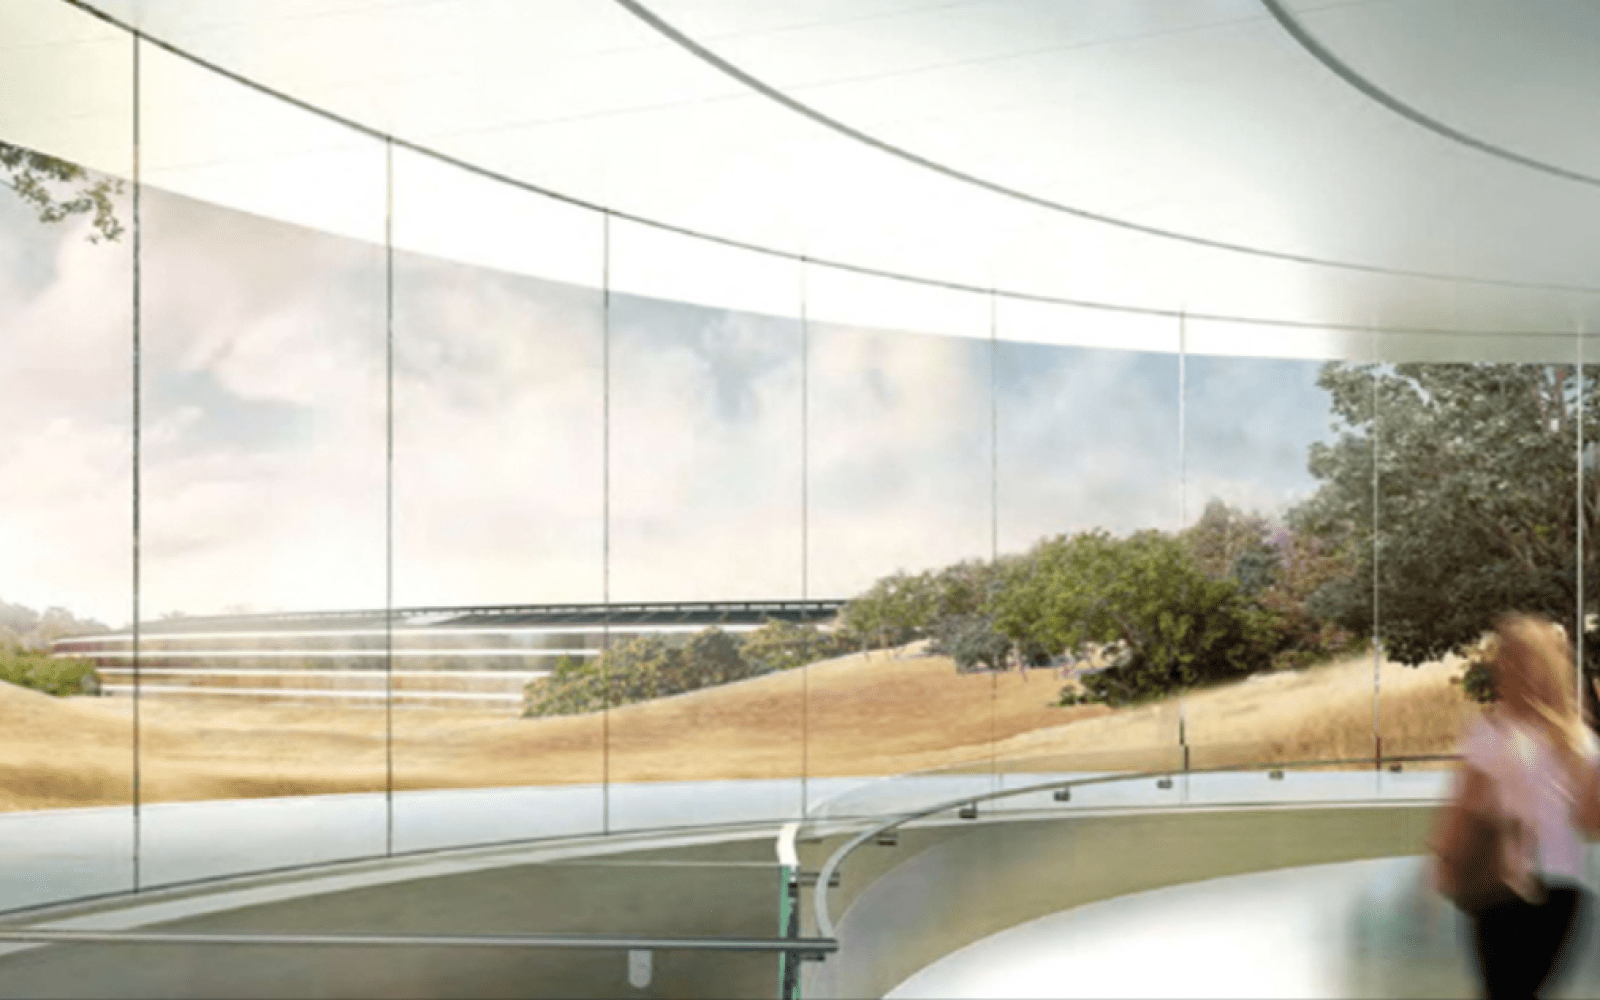 Apple receives full set of building permits for its 'spaceship' campus today [Update: video added]